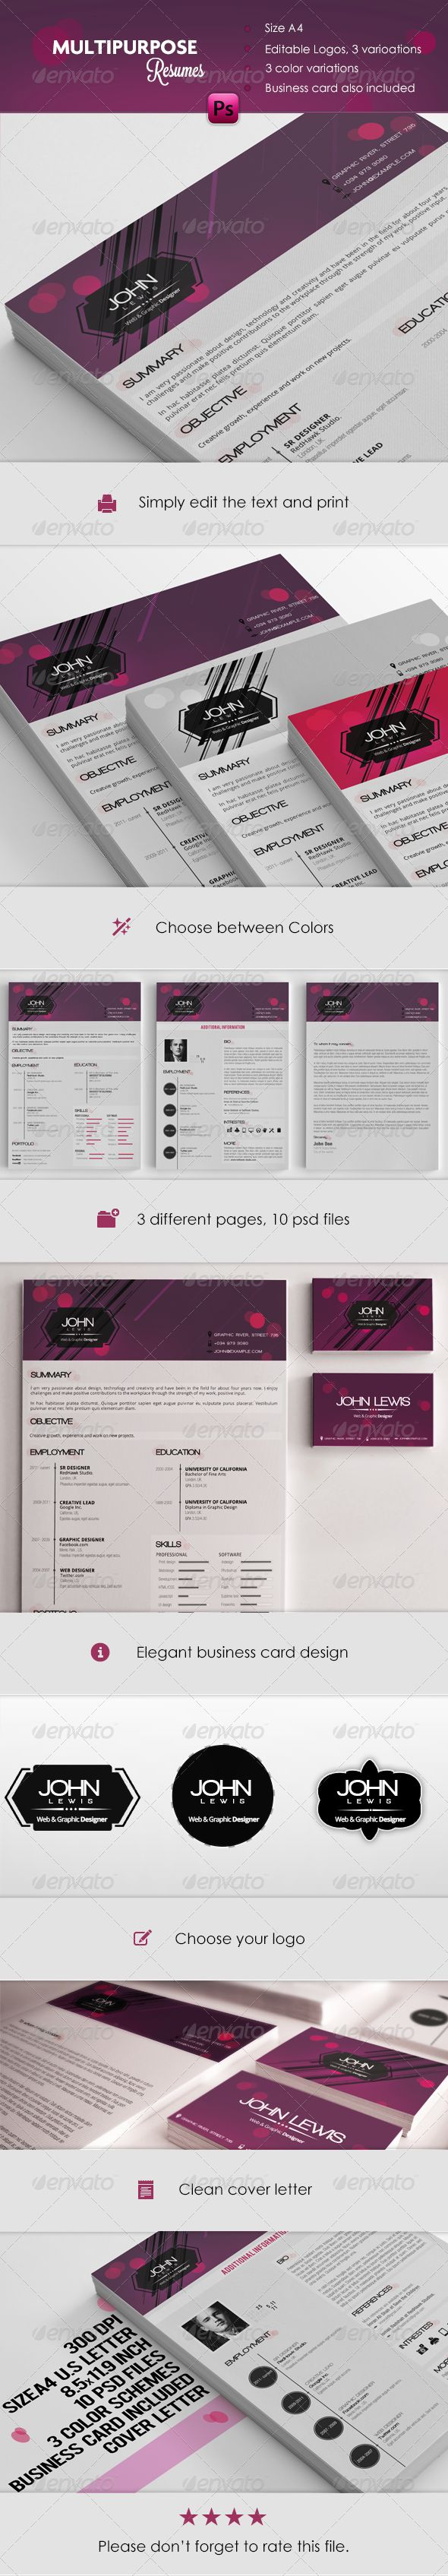 92 best print templates images on pinterest